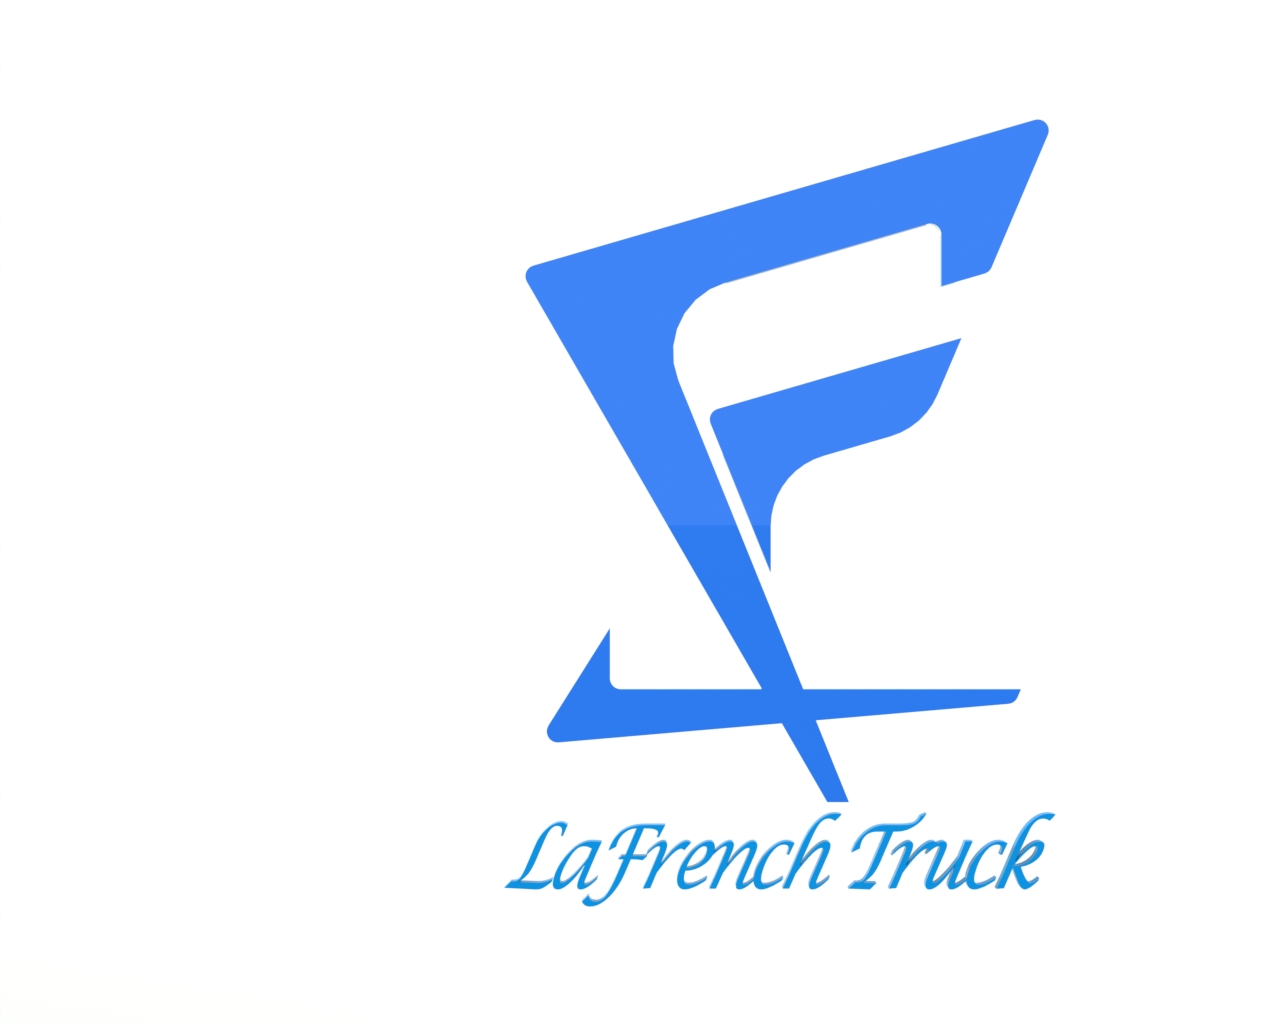 logo lafrench bleue